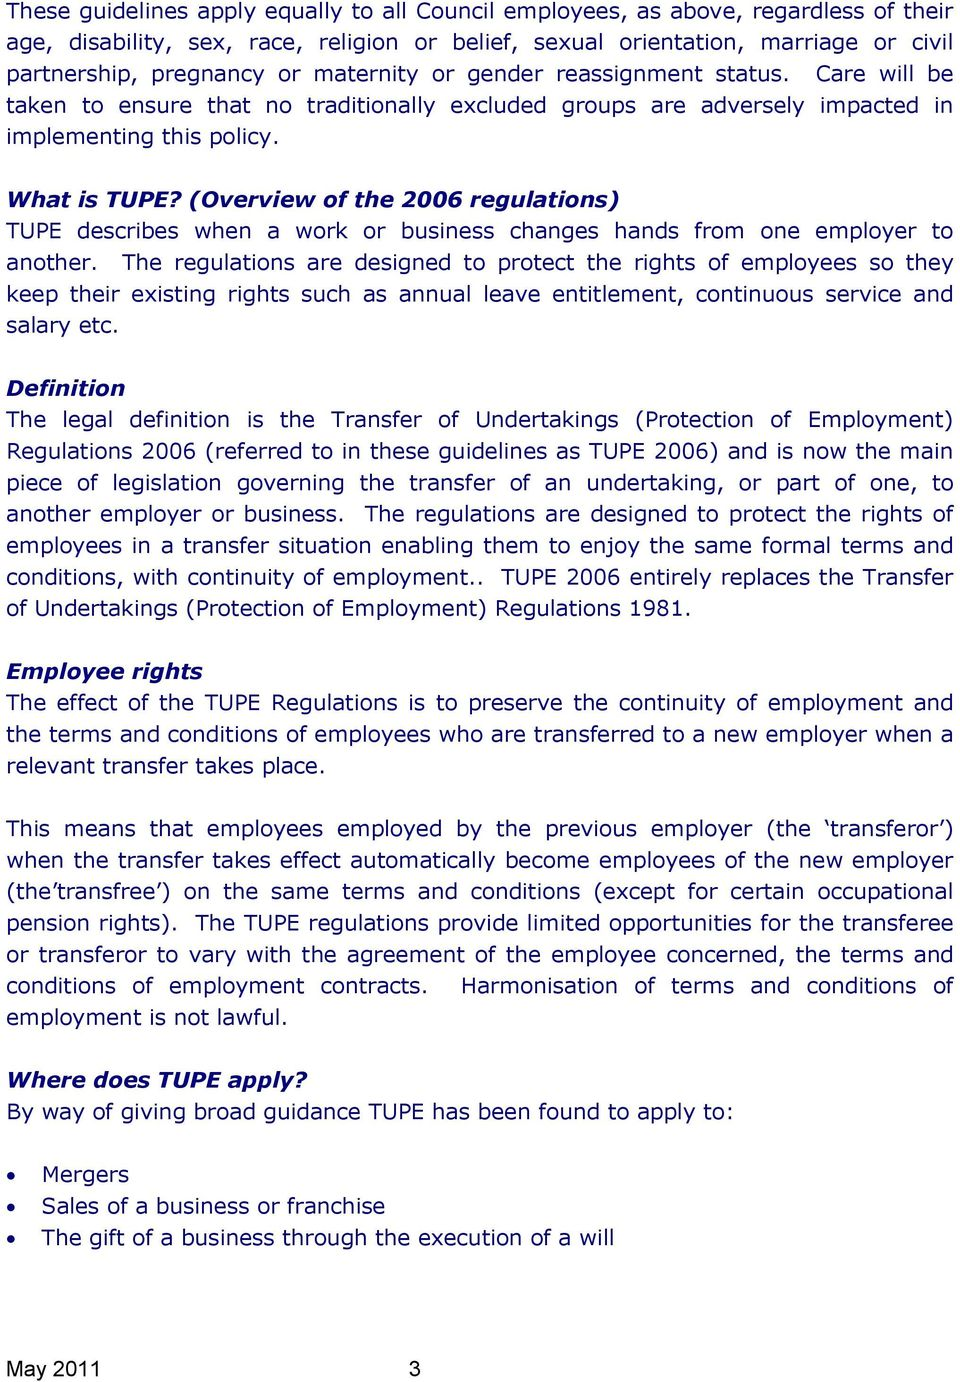 (Overview of the 2006 regulations) TUPE describes when a work or business changes hands from one employer to another.